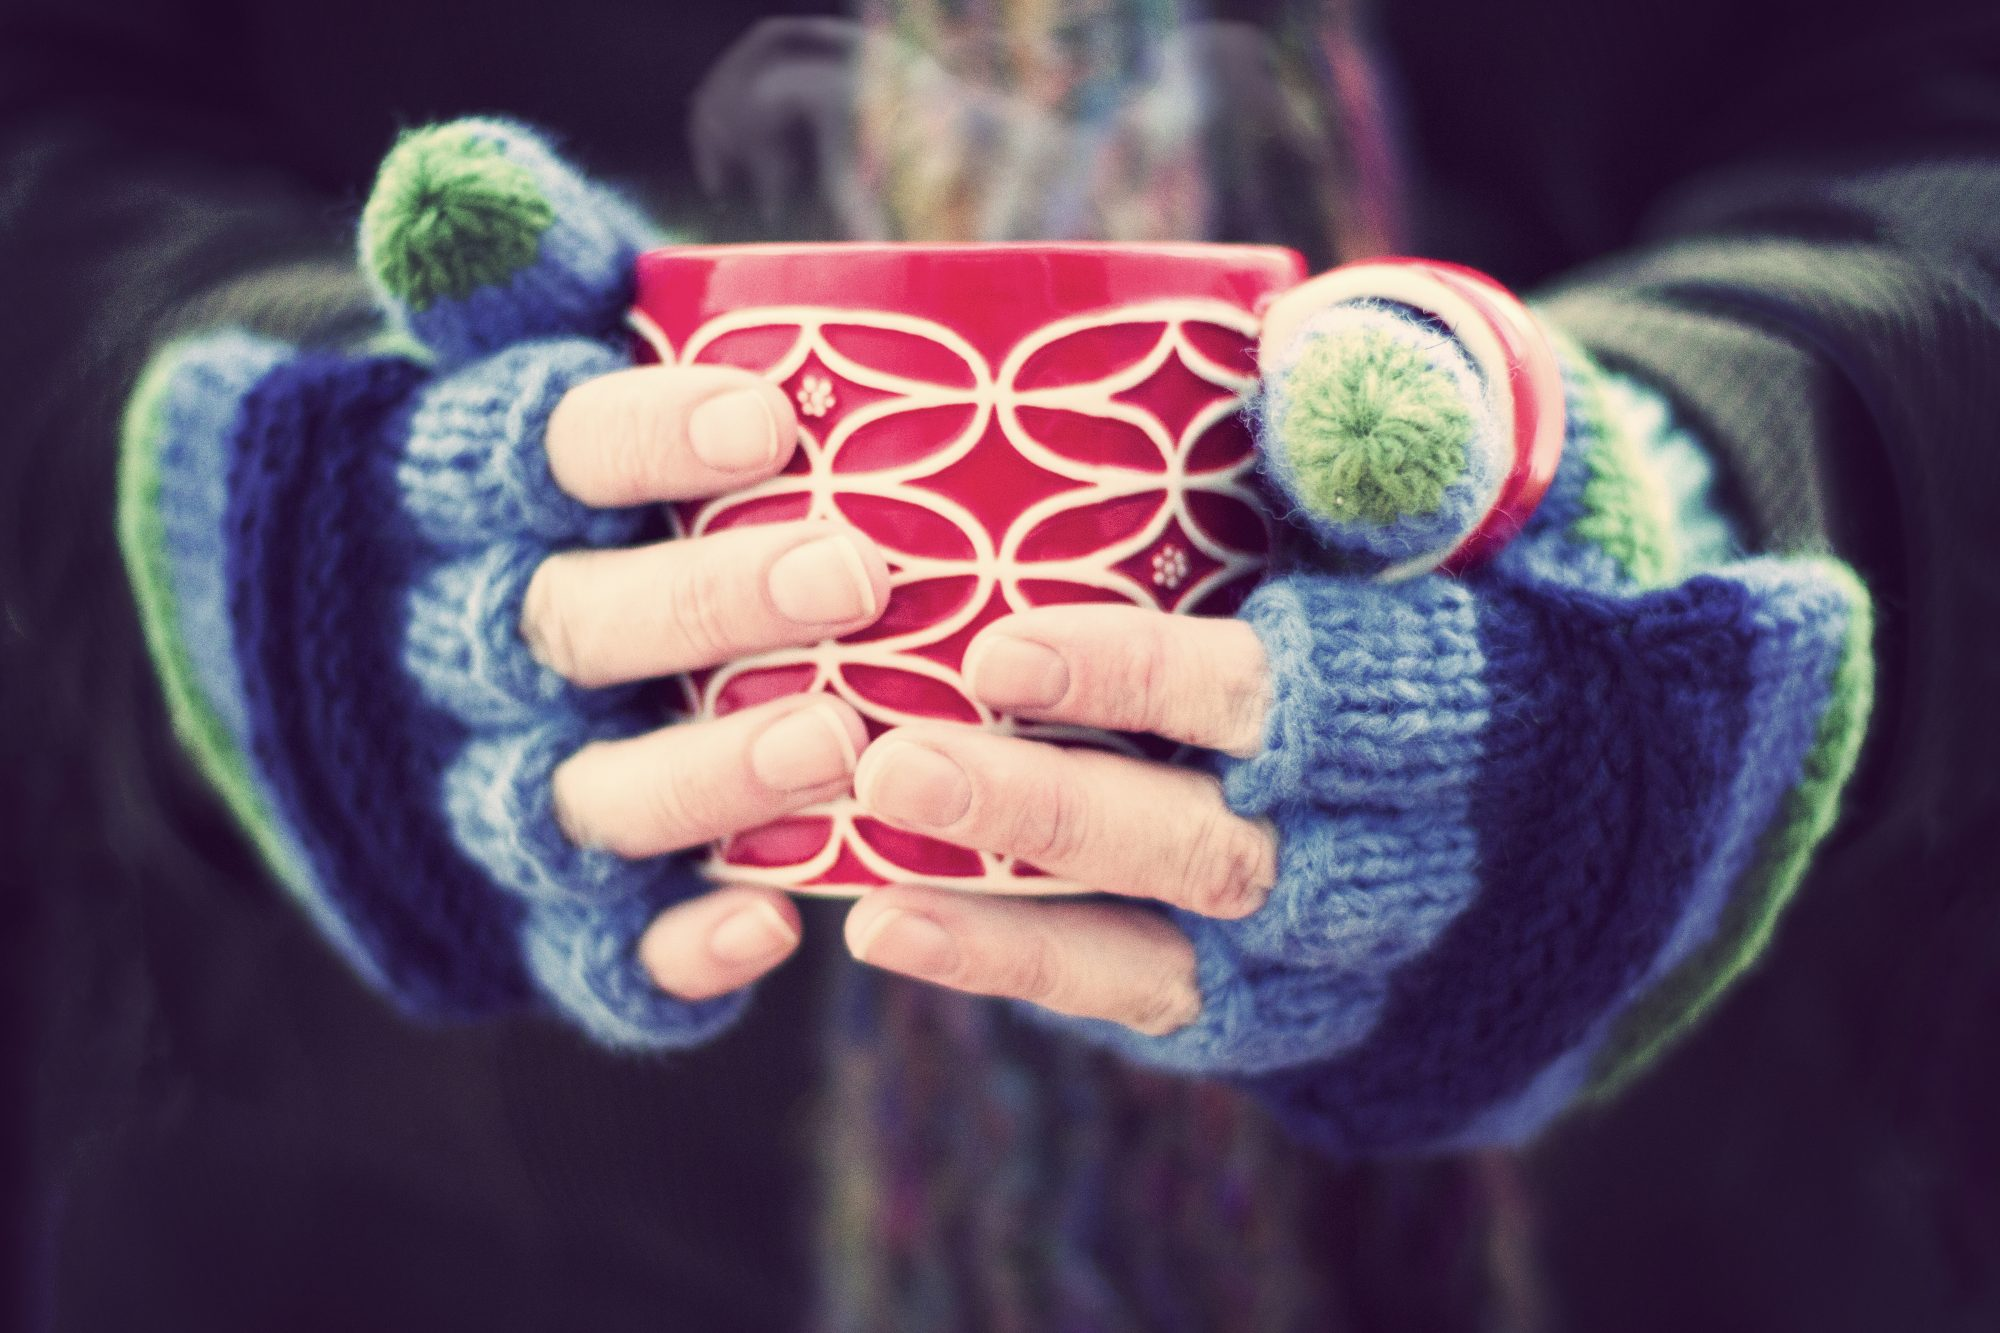 Gloved Hands Grasping Warm Mug